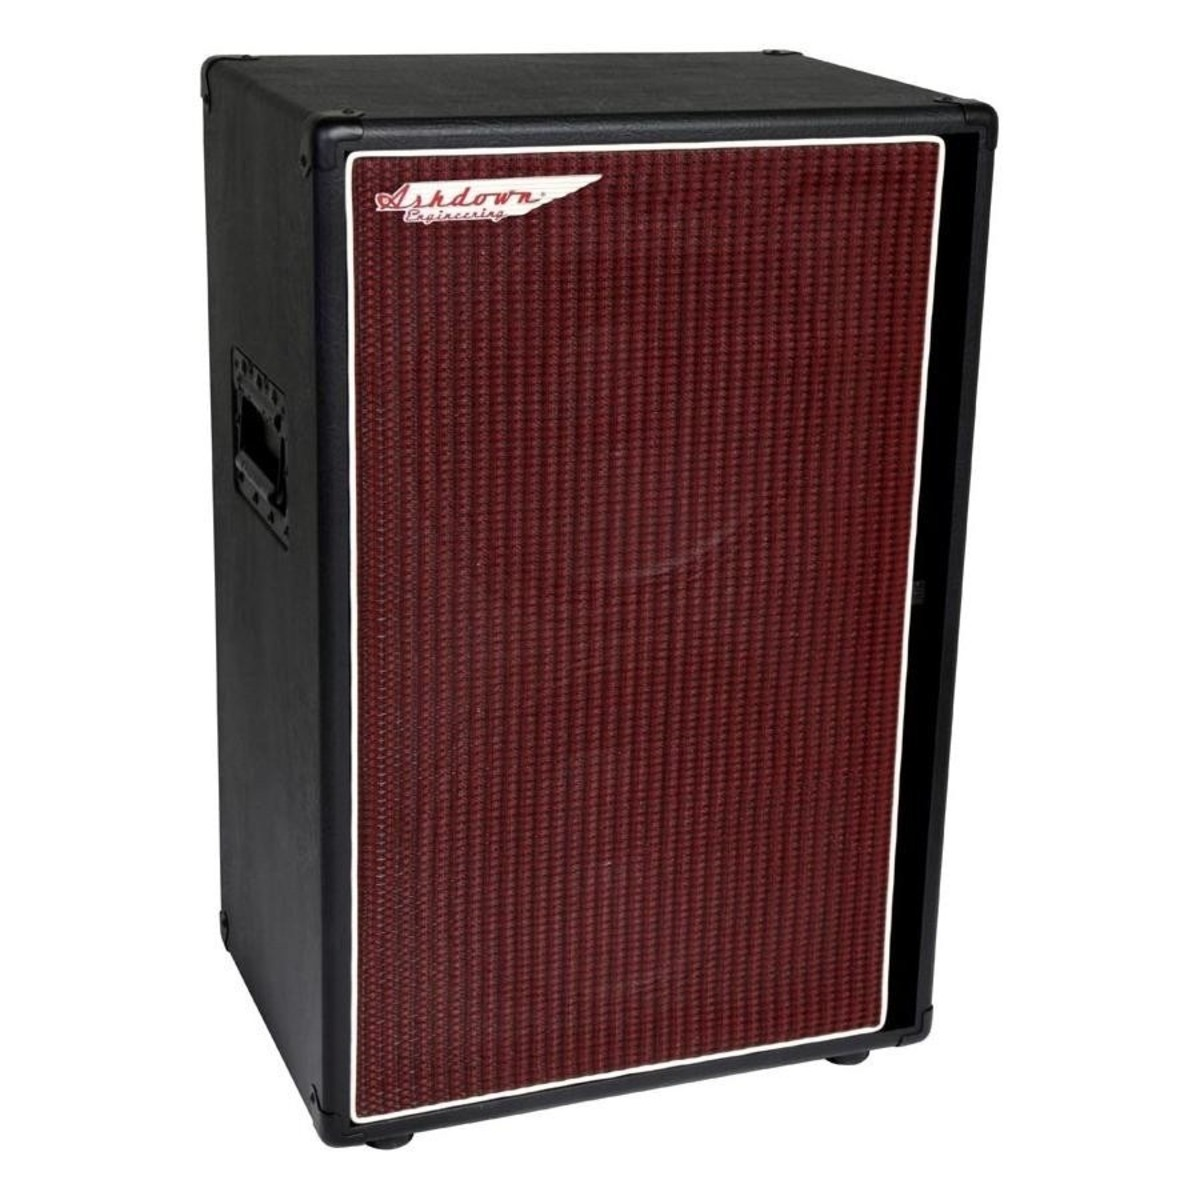 Ashdown Vs 212 200 Bass Amp Cabinet Nearly New At Gear4music